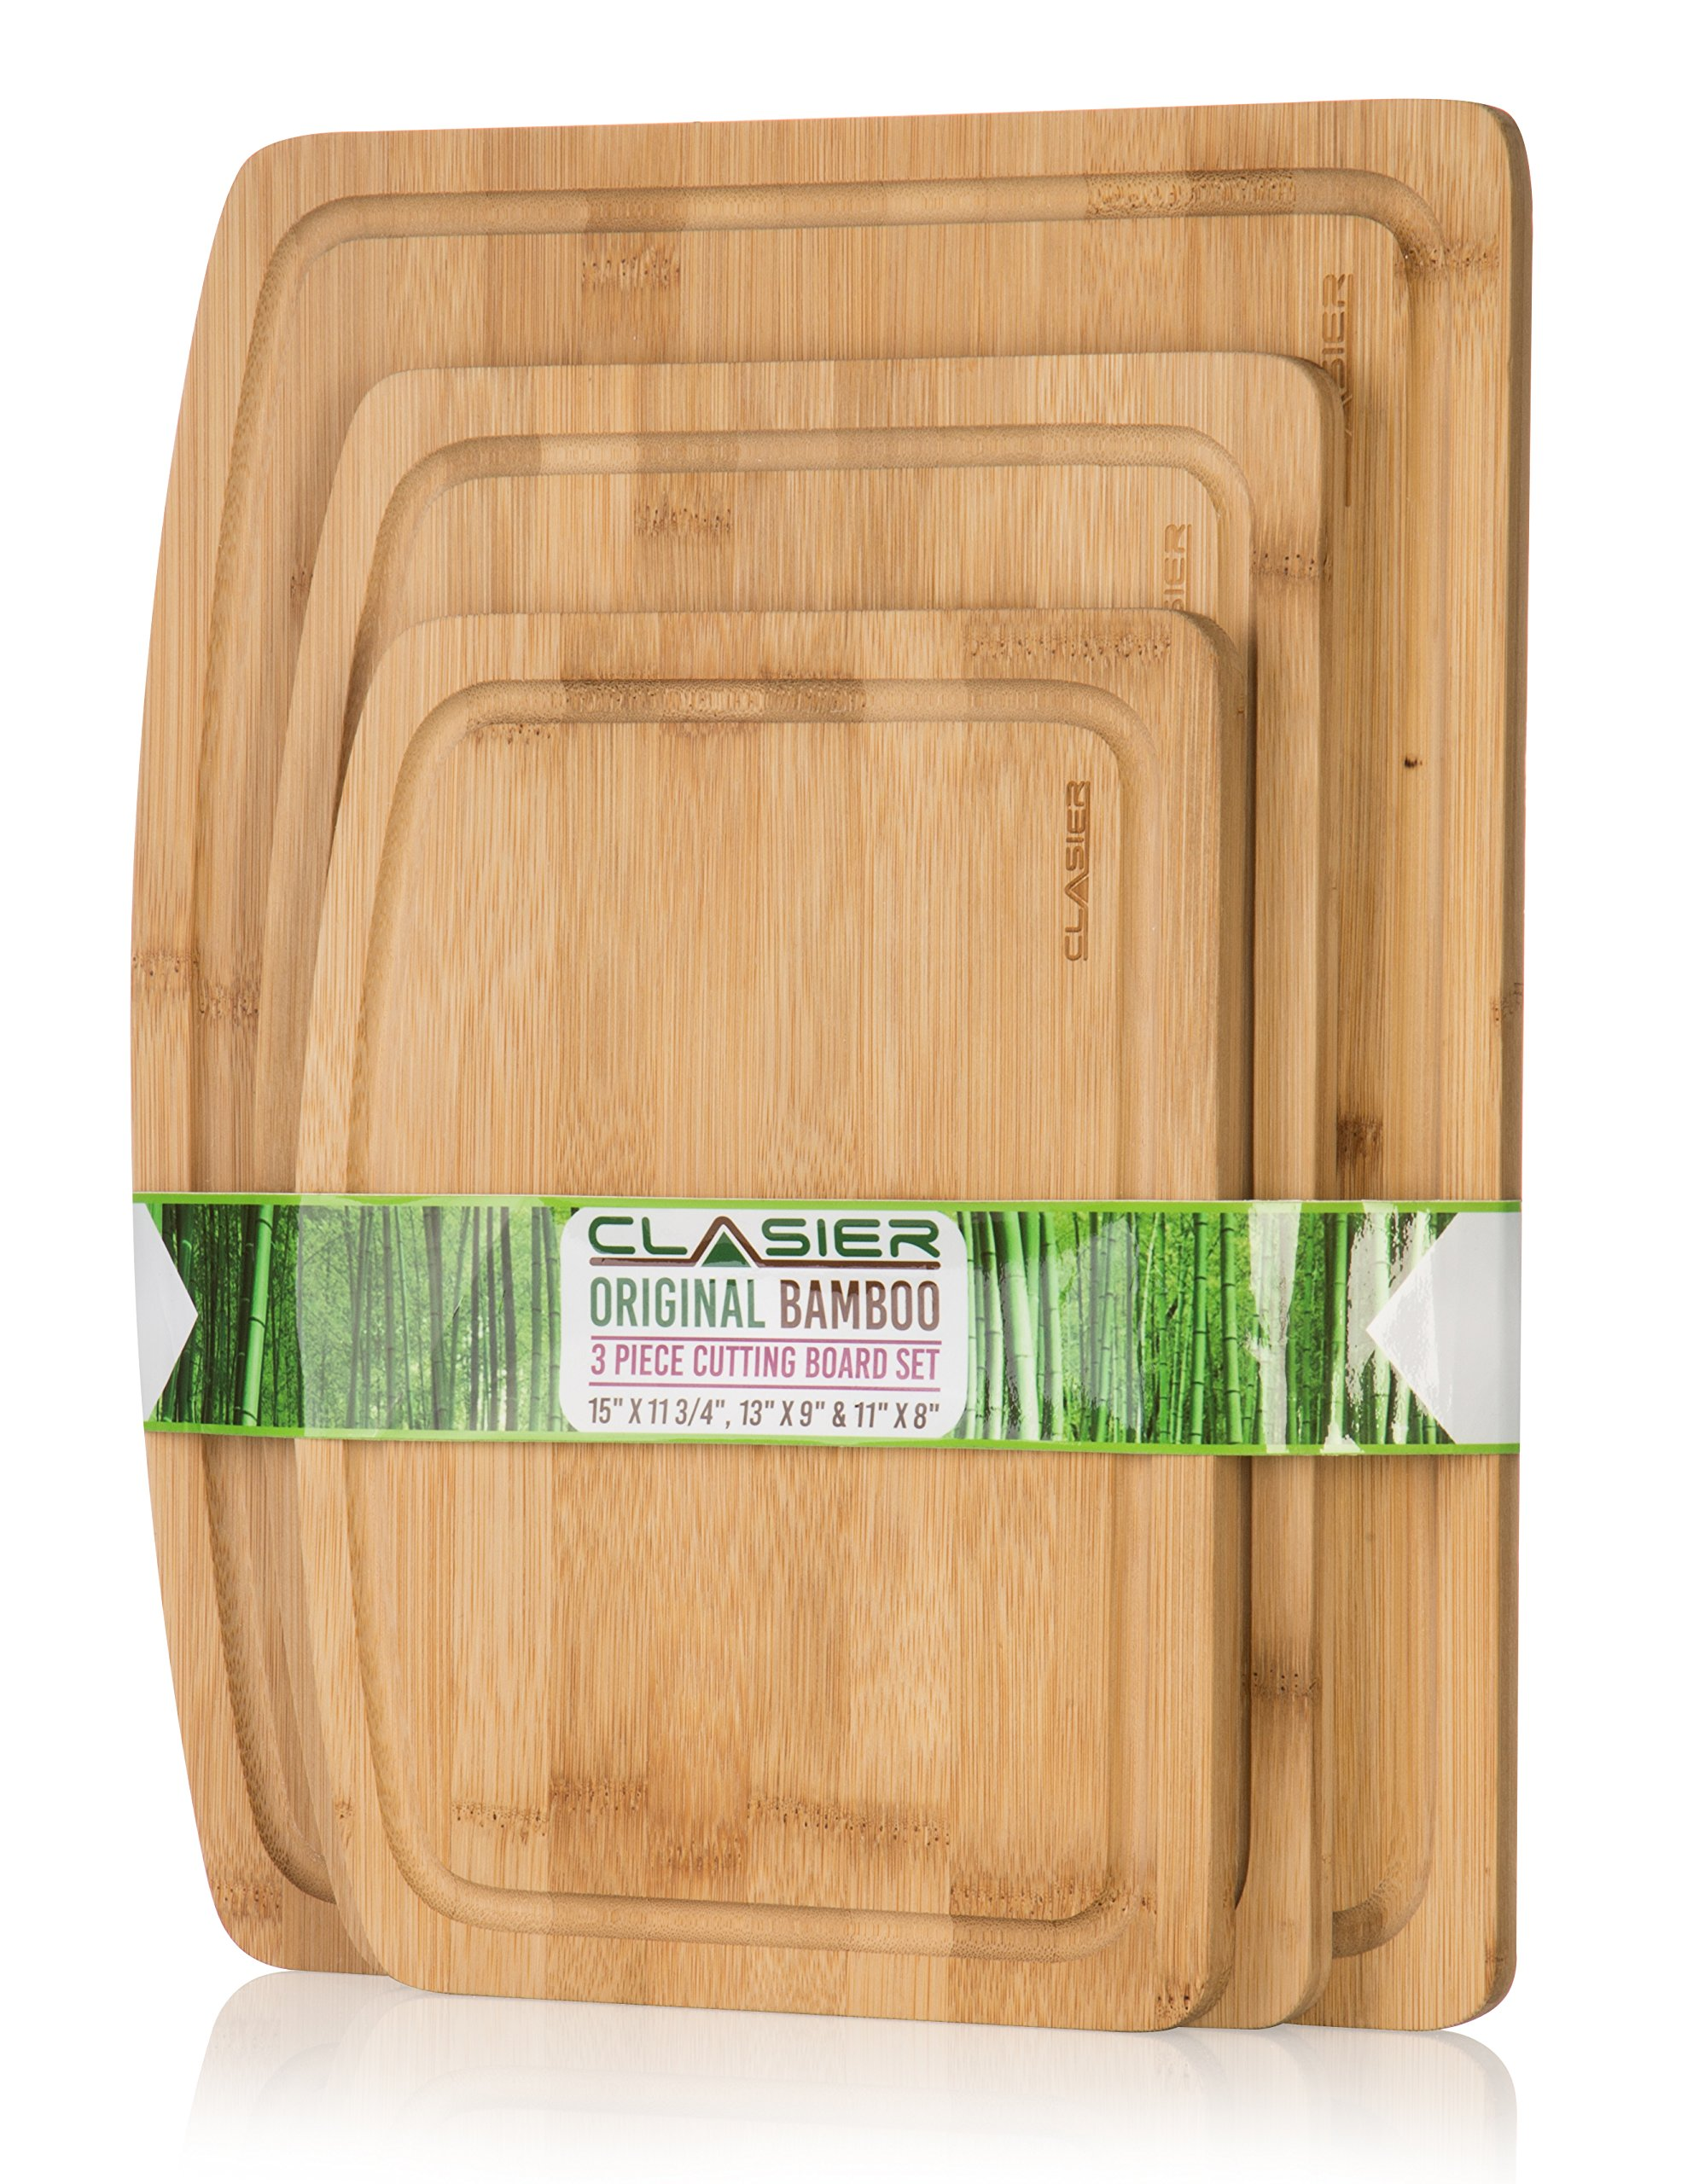 Premium Bamboo Cutting Boards for Kitchen Set of 3 - Eco-Friendly 100% Natural Bamboo Wooden Chopping Board with Juice Groove for Food Prep, Meat, Vegetables, Fruits, Crackers & Cheese - by Clasier by CLASIER